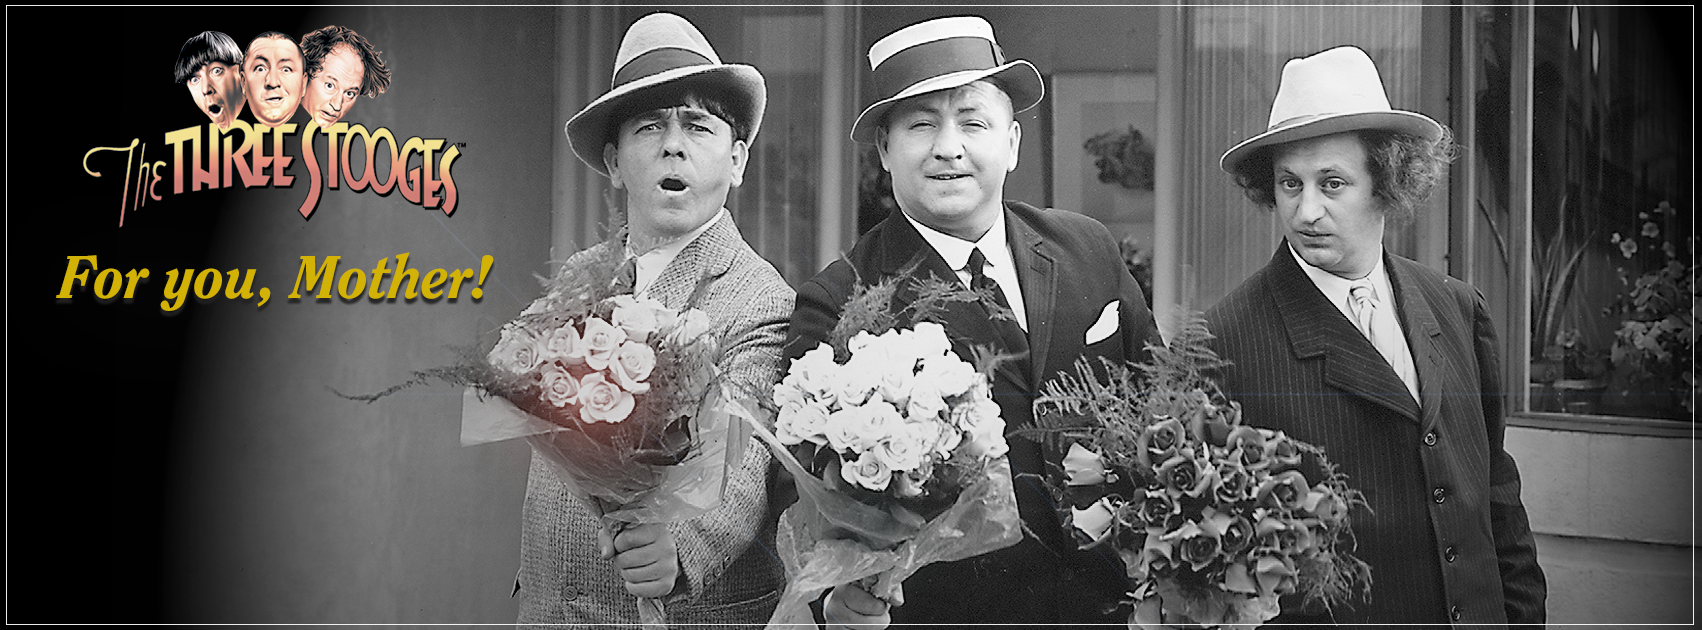 Happy Mother's Day! | The Three Stooges